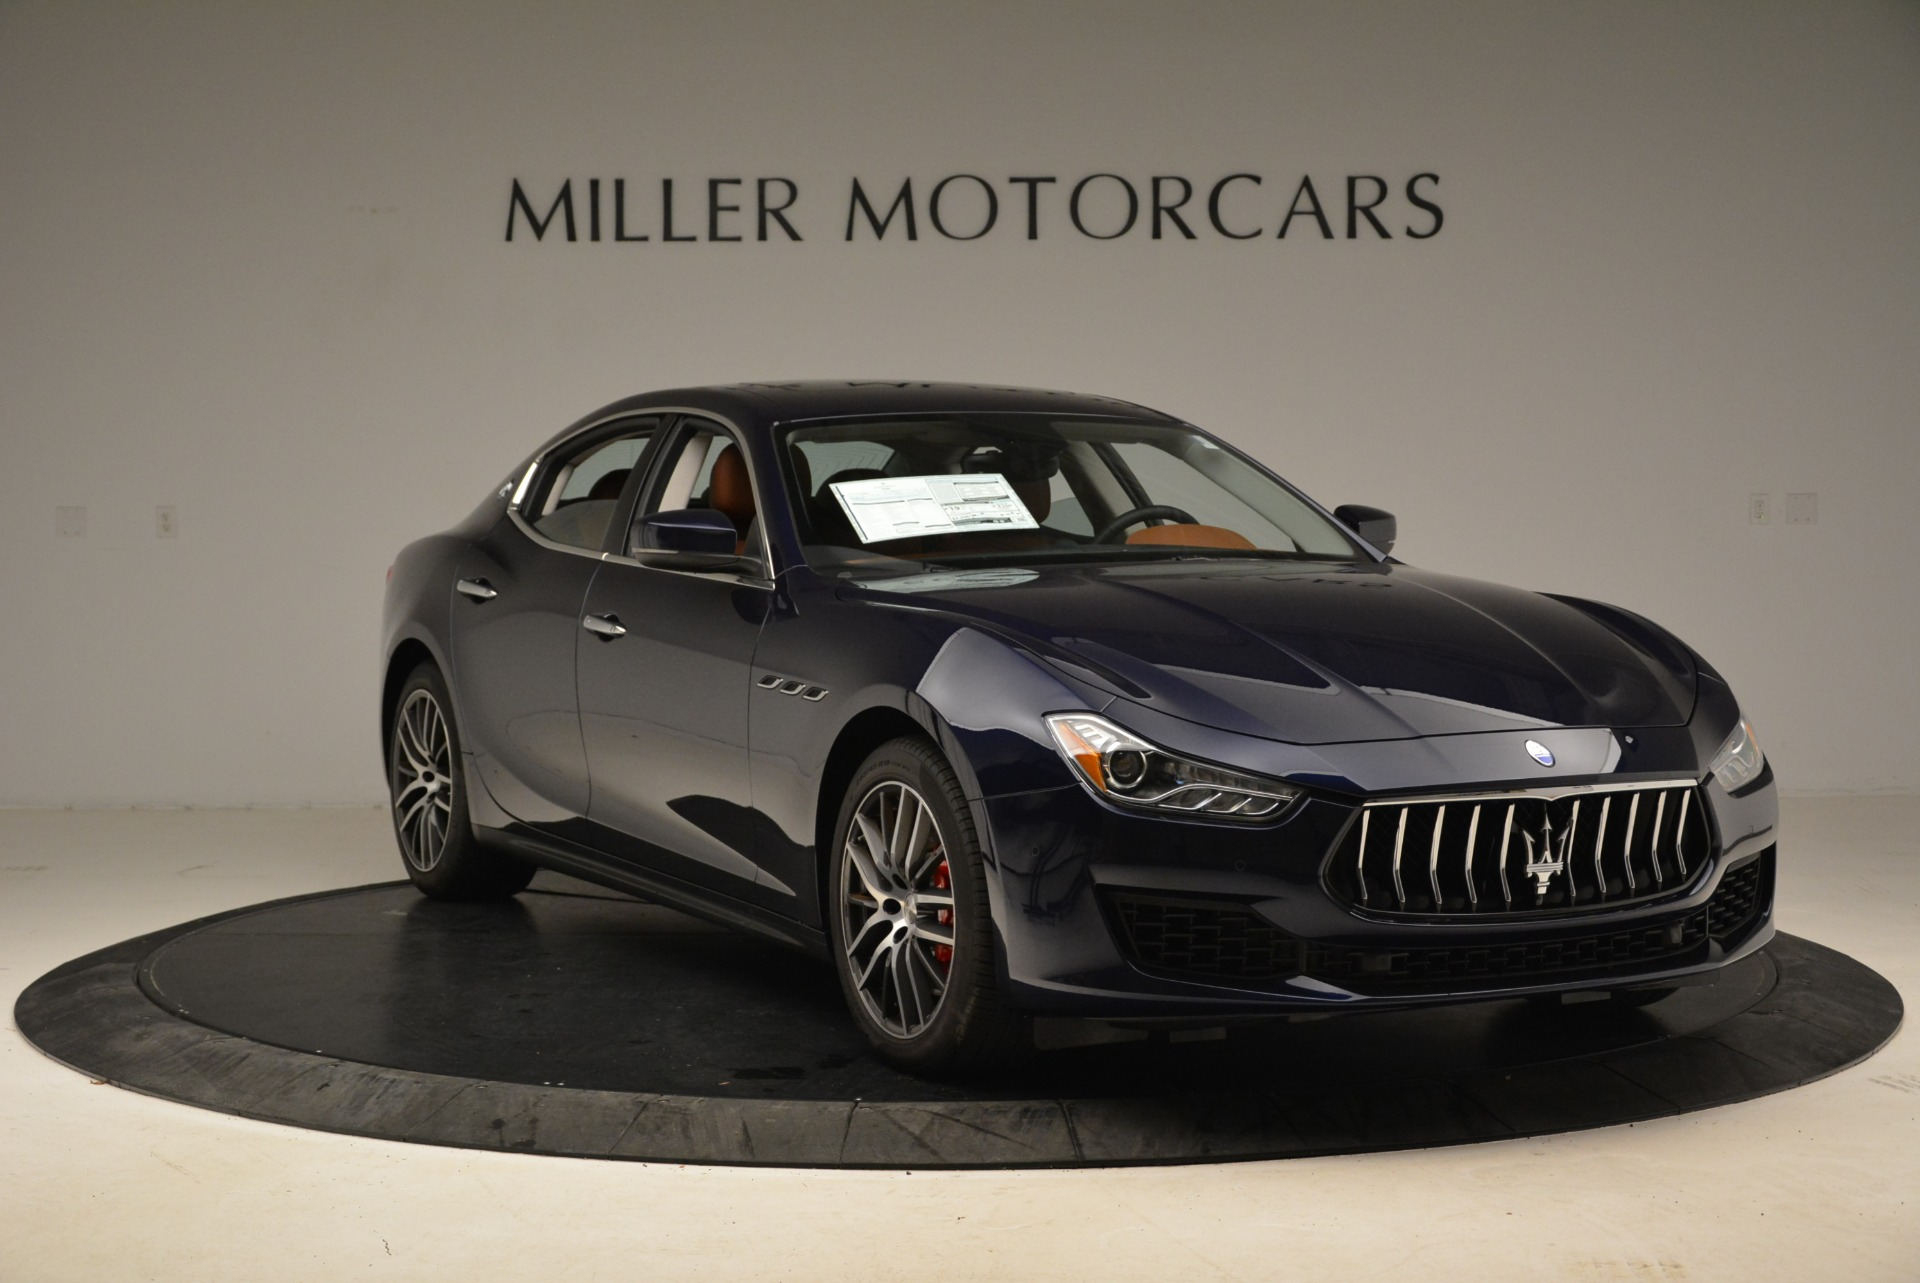 New 2019 Maserati Ghibli S Q4 For Sale In Greenwich, CT 2799_p11